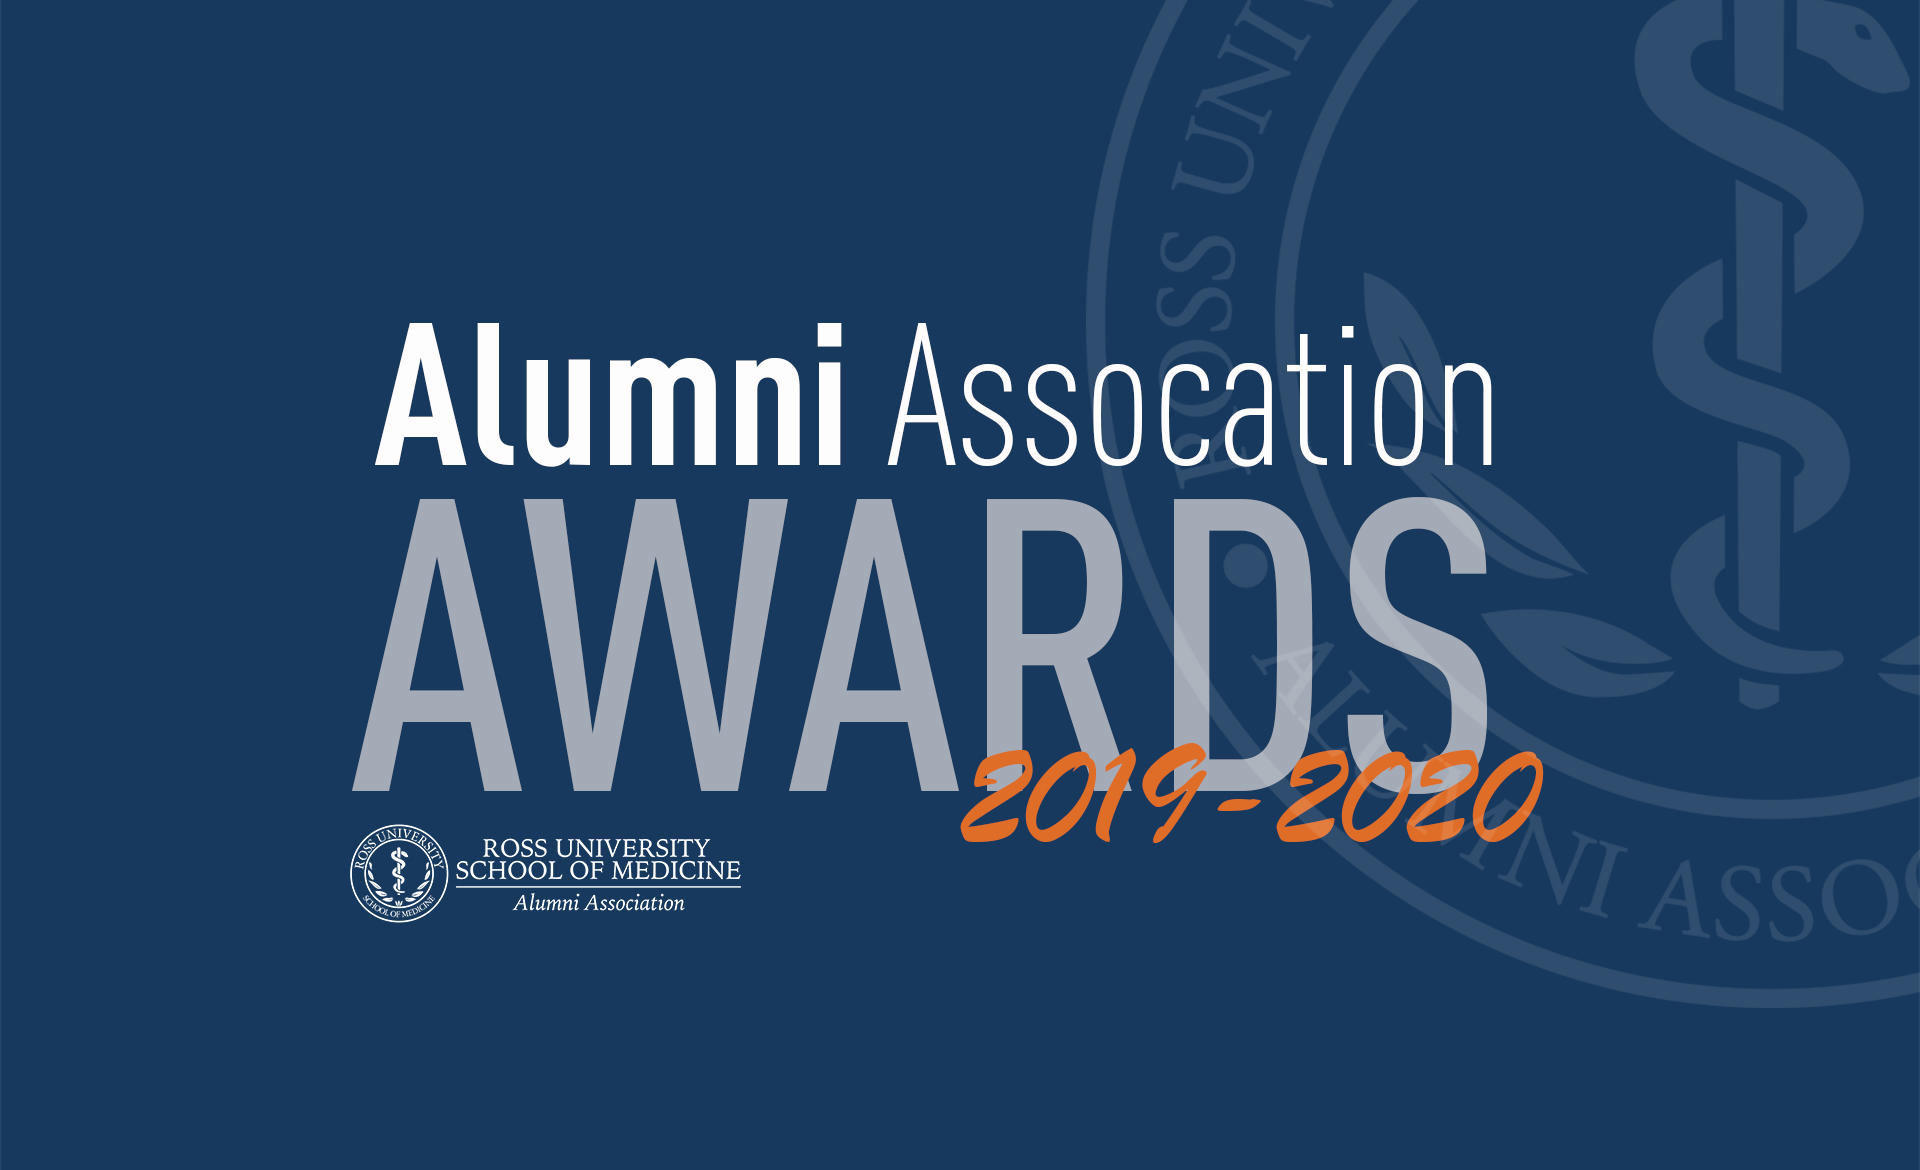 Alumni Association Awards Header 2020